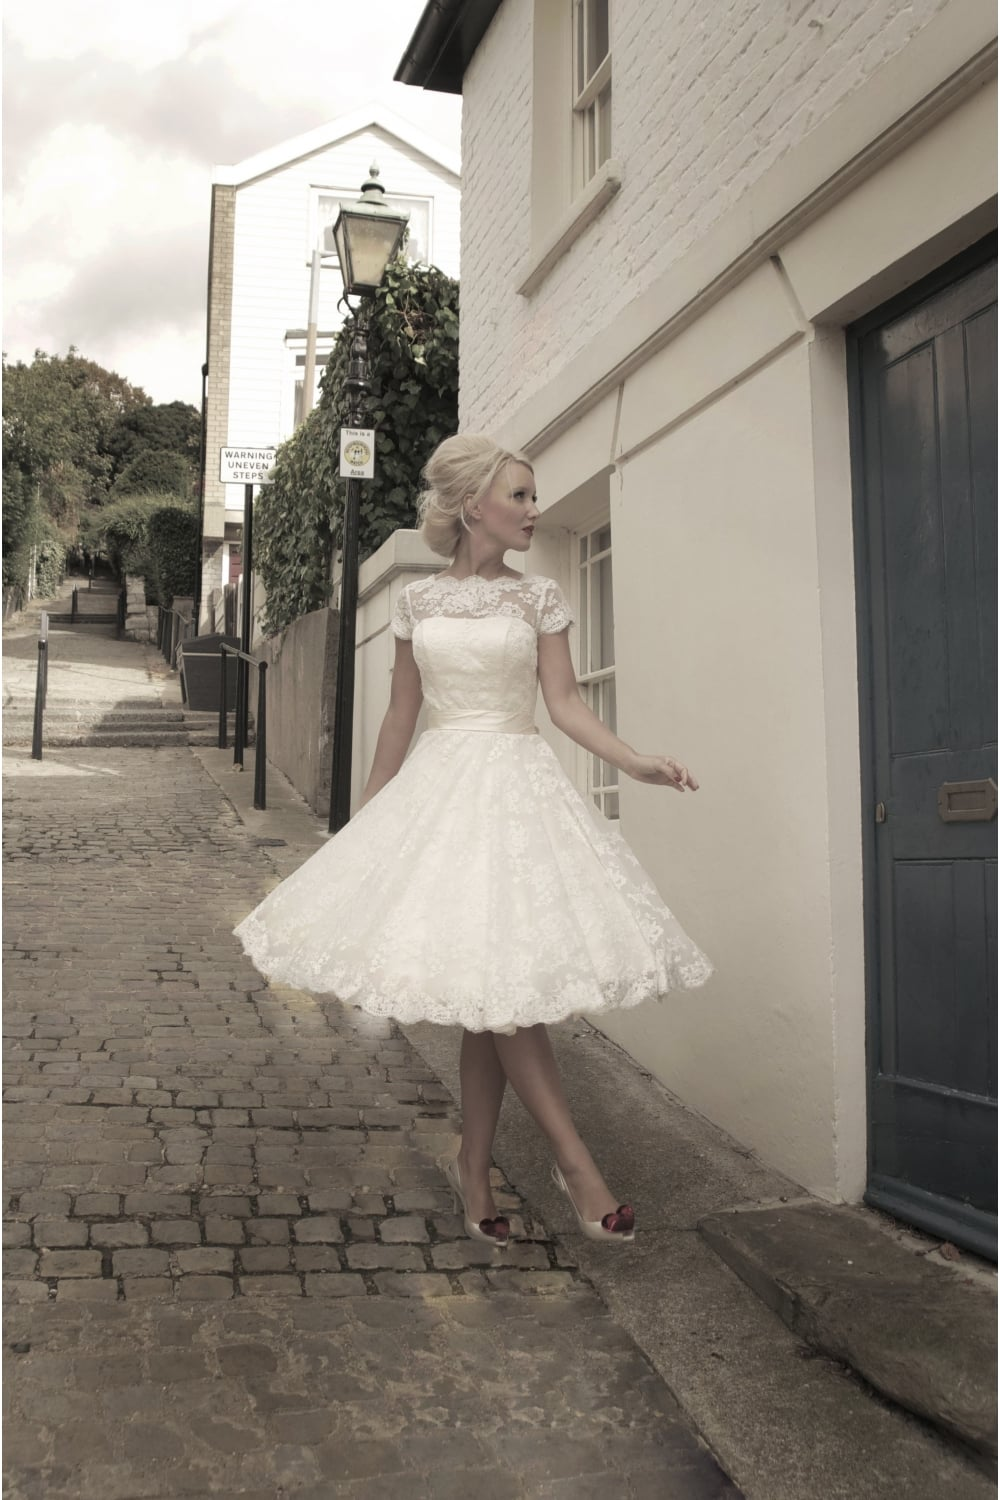 60s style wedding dresses 60's wedding dress Puffed Sleeves Organza and Satin Wedding Dress with Applique